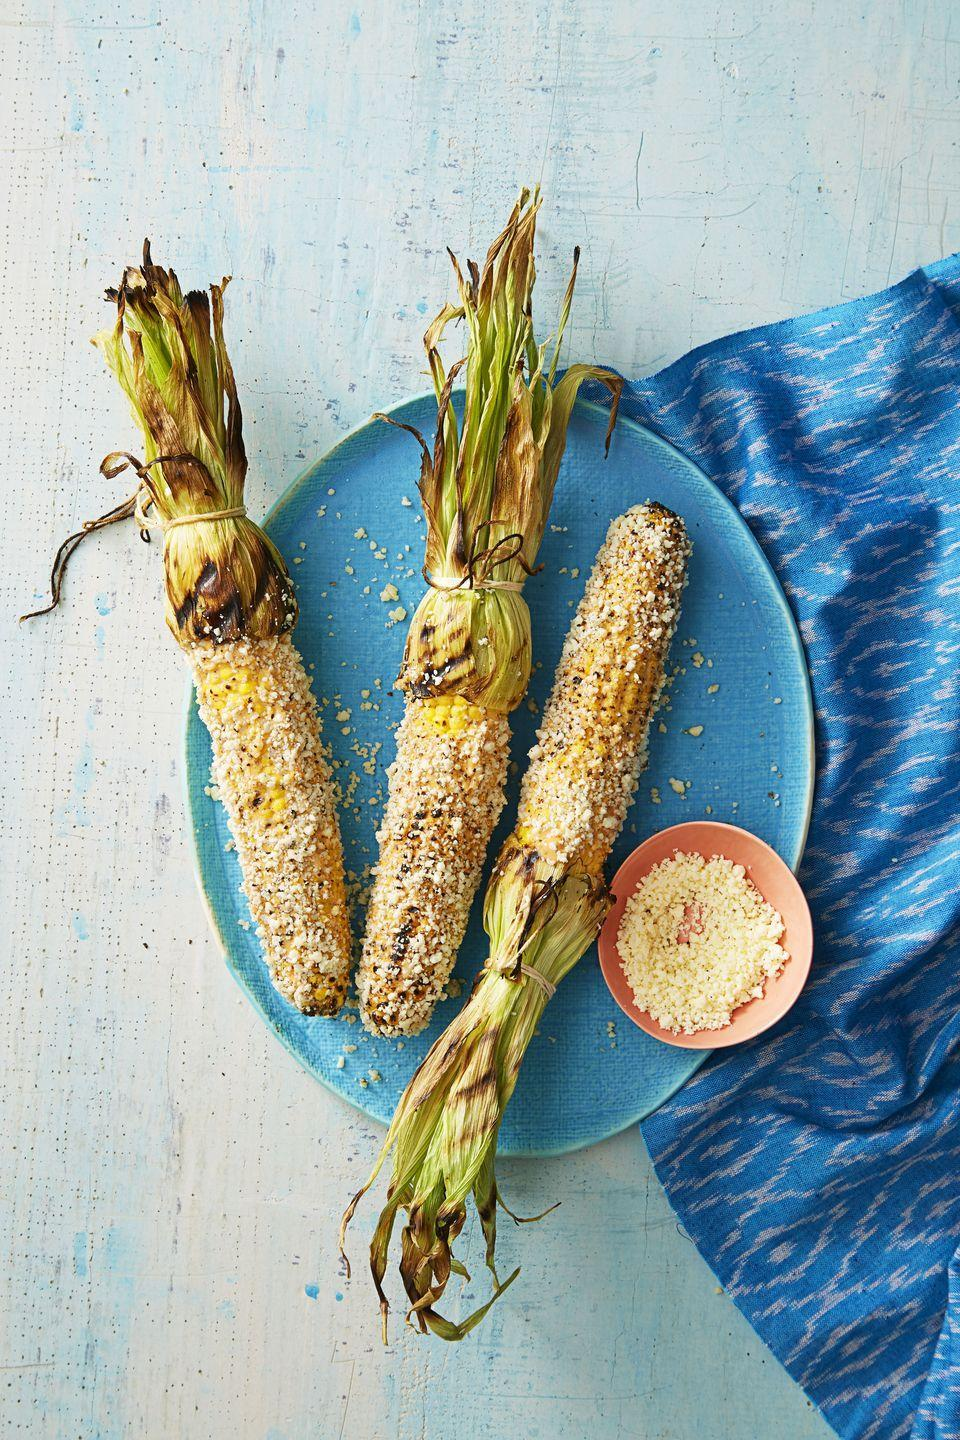 """<p>Grilled corn gets even better with zesty, spicy, and smoky toppings. Oh, and plenty of crumbled Cotija cheese.</p><p><em><a href=""""https://www.goodhousekeeping.com/food-recipes/a38825/mexican-grilled-corn-recipe/"""" rel=""""nofollow noopener"""" target=""""_blank"""" data-ylk=""""slk:Get the recipe for Mexican Grilled Corn »"""" class=""""link rapid-noclick-resp"""">Get the recipe for Mexican Grilled Corn »</a></em> </p>"""